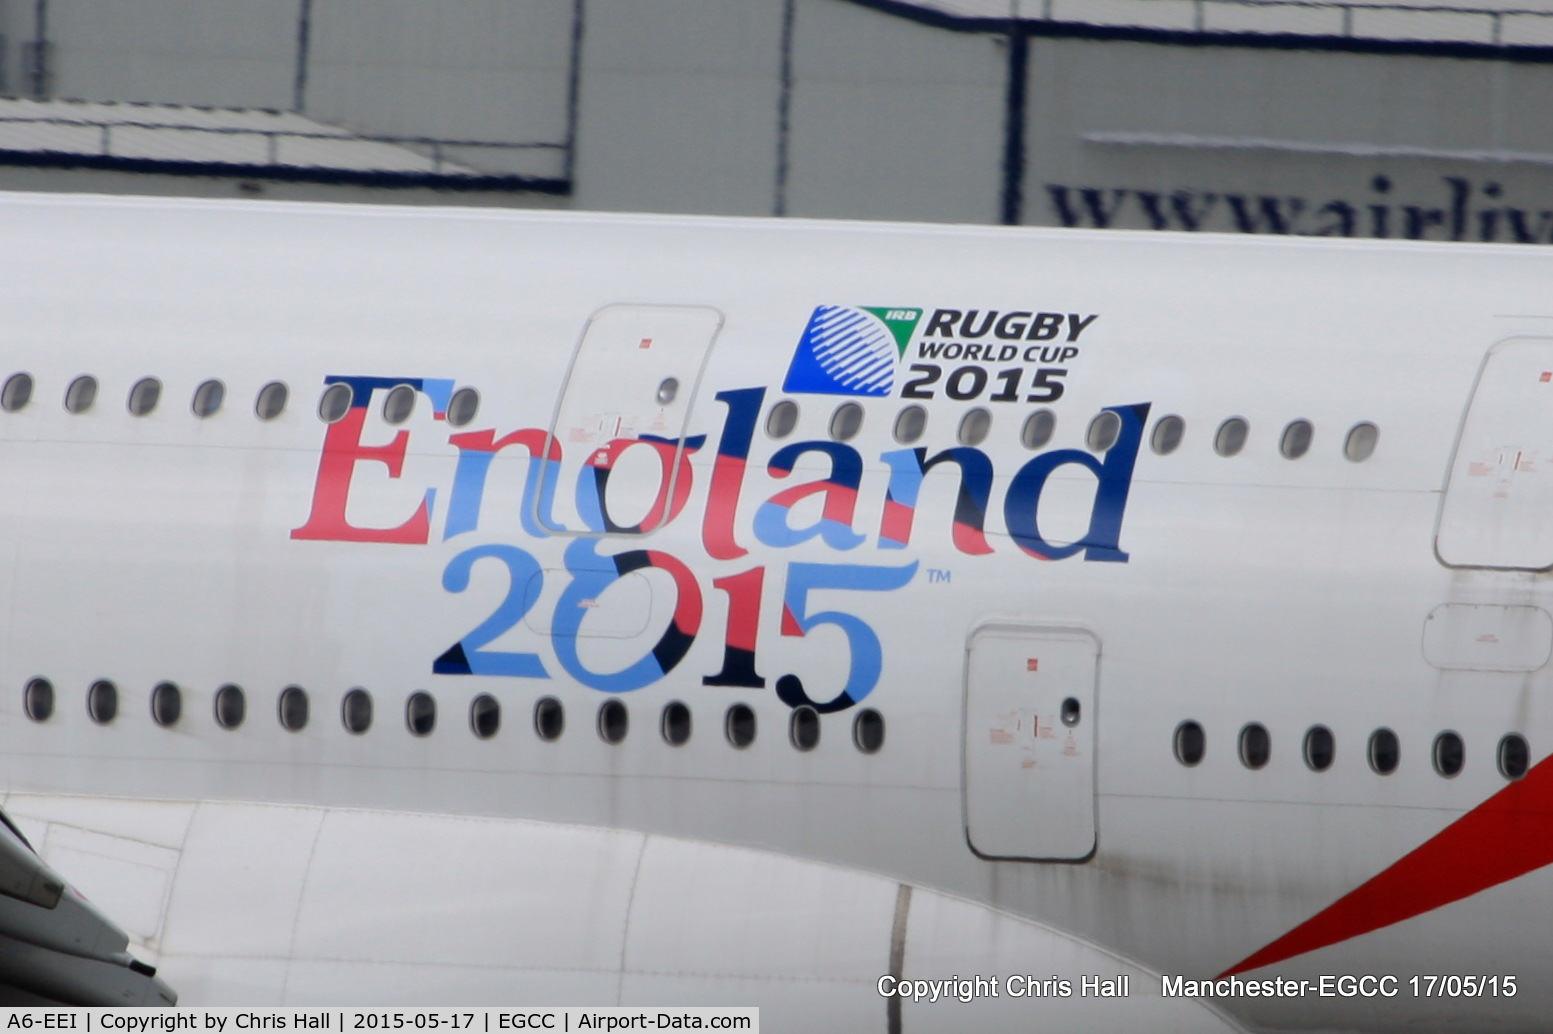 A6-EEI, 2012 Airbus A380-861 C/N 123, England Rugby world cup logo